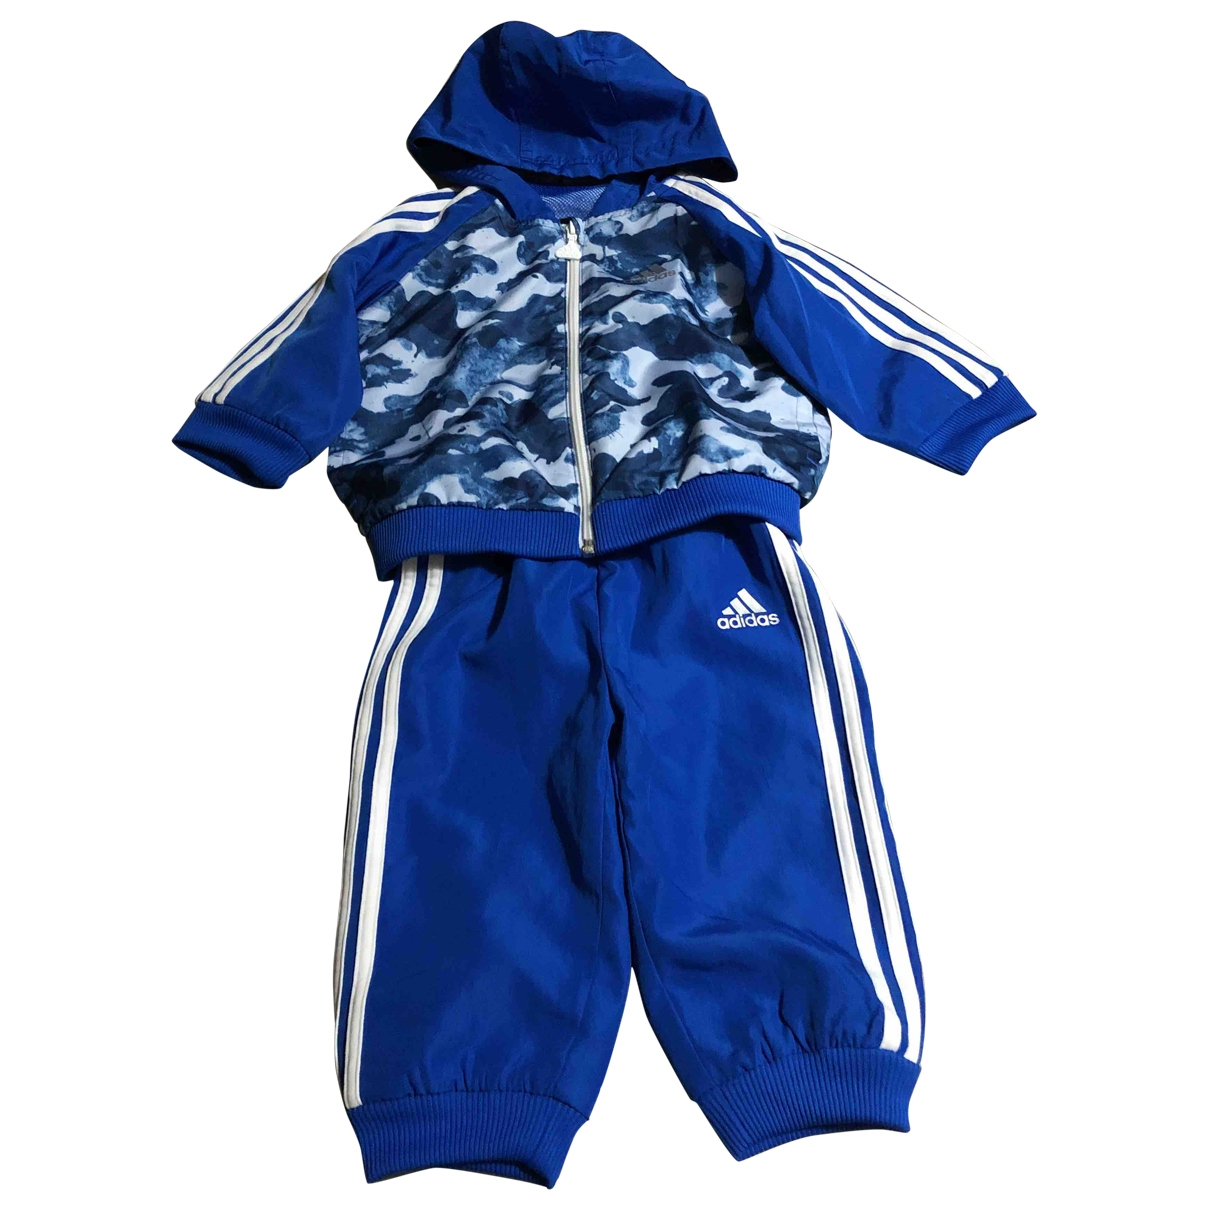 Adidas \N Blue Cotton Outfits for Kids 6 months - up to 67cm FR